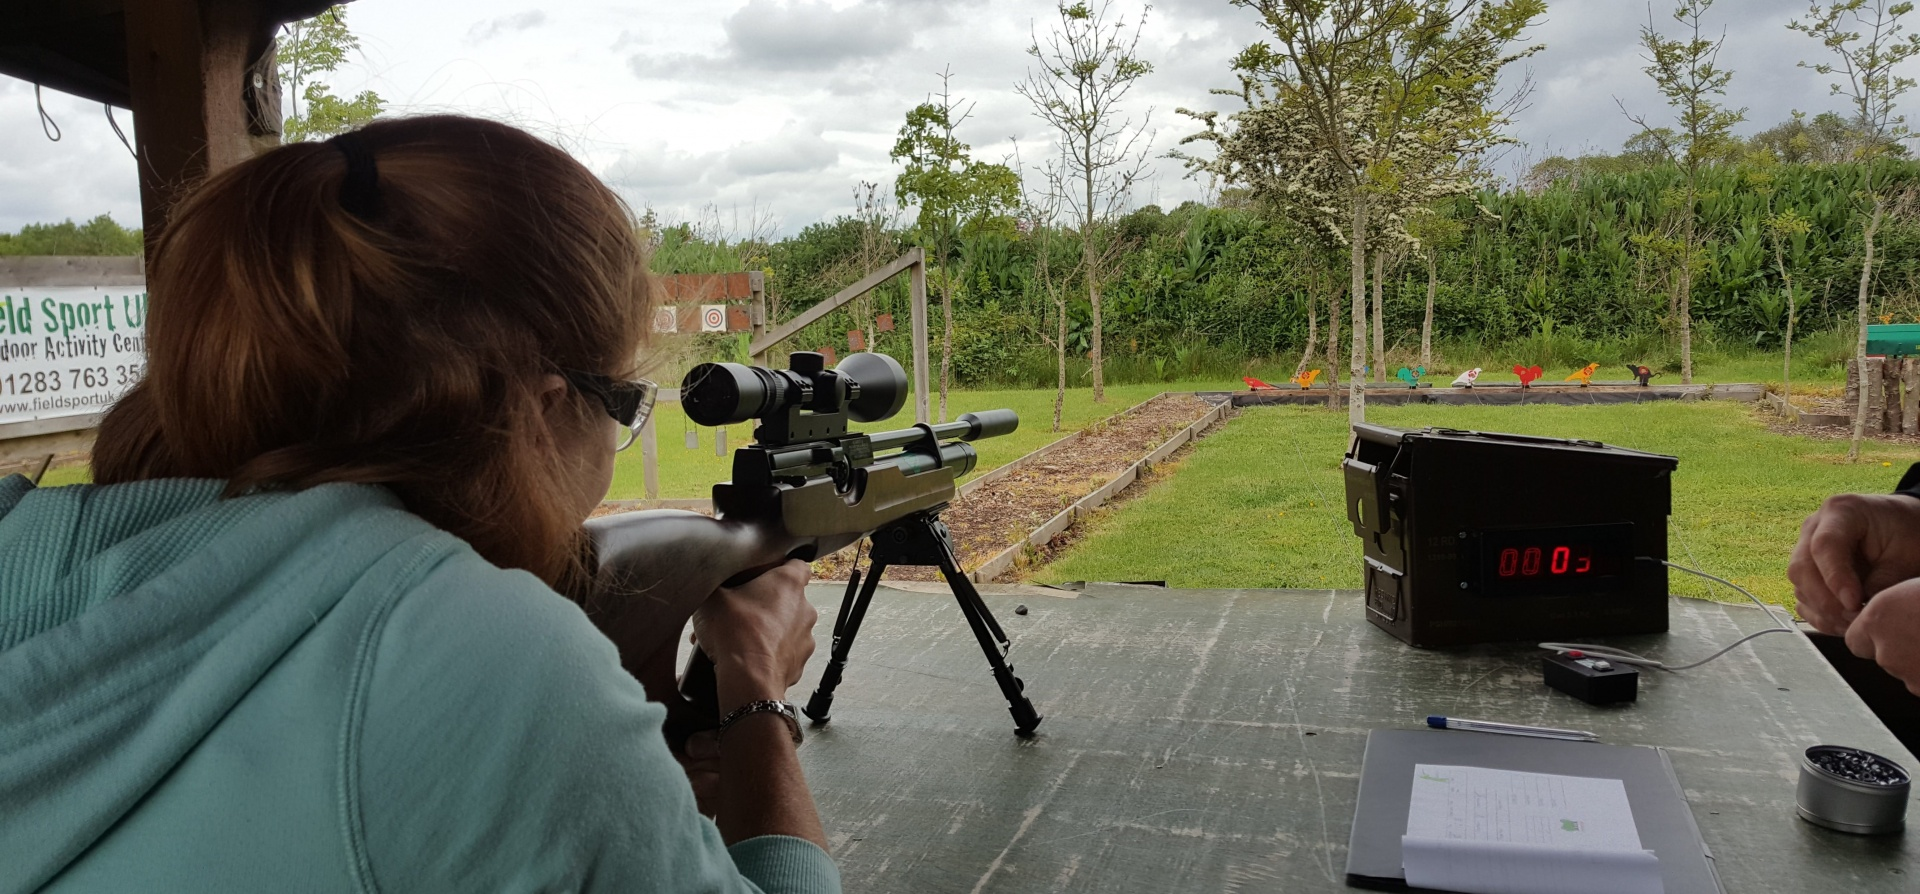 Moving Target Shooting For Two in Leicestershire-2